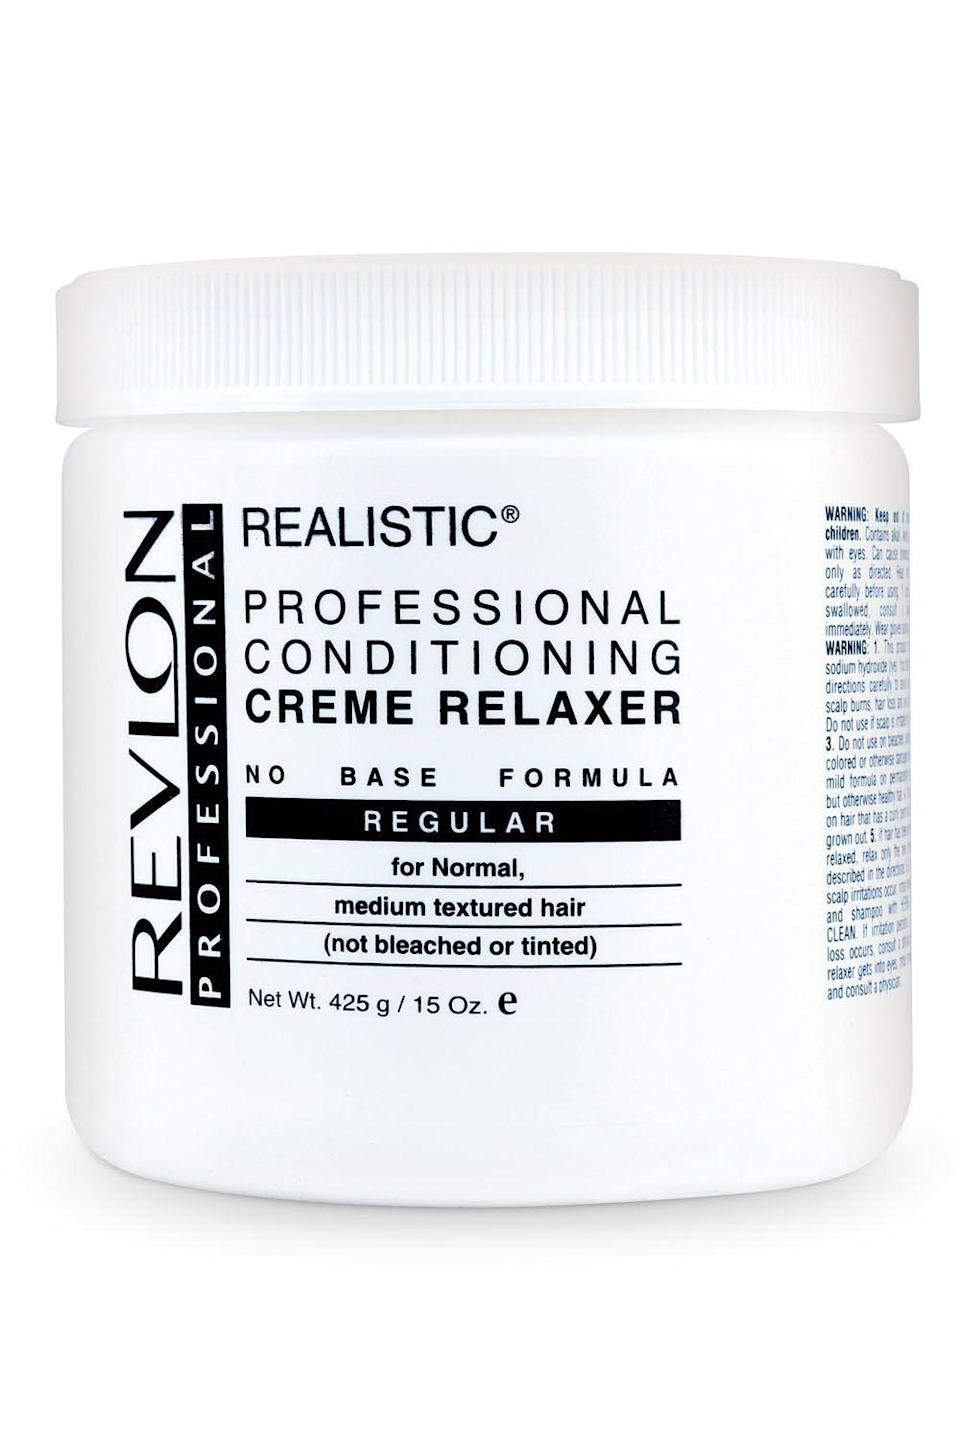 """<p><strong>Revlon Professional</strong></p><p>sallybeauty.com</p><p><strong>$22.99</strong></p><p><a href=""""https://go.redirectingat.com?id=74968X1596630&url=https%3A%2F%2Fwww.sallybeauty.com%2Fhair%2Ftextured-hair%2Fperms-and-straighteners%2Fstraighteners%2Fregular-conditioning-creme-relaxer%2FREVPRF1.html&sref=https%3A%2F%2Fwww.cosmopolitan.com%2Fstyle-beauty%2Fbeauty%2Fg33368236%2Fbest-hair-relaxer%2F"""" rel=""""nofollow noopener"""" target=""""_blank"""" data-ylk=""""slk:Shop Now"""" class=""""link rapid-noclick-resp"""">Shop Now</a></p><p>While this hair relaxer is powerful (seriously, your <a href=""""https://www.cosmopolitan.com/style-beauty/beauty/a63825/hacks-for-fuller-hair/"""" rel=""""nofollow noopener"""" target=""""_blank"""" data-ylk=""""slk:thick hair"""" class=""""link rapid-noclick-resp"""">thick hair</a> doesn't stand a chance), it won't dry out or break off your hair. In fact, it does just the opposite—<strong>the formula straightens and conditions your hair gently, </strong>making it softer and smoother than you ever imagined it could be. </p>"""